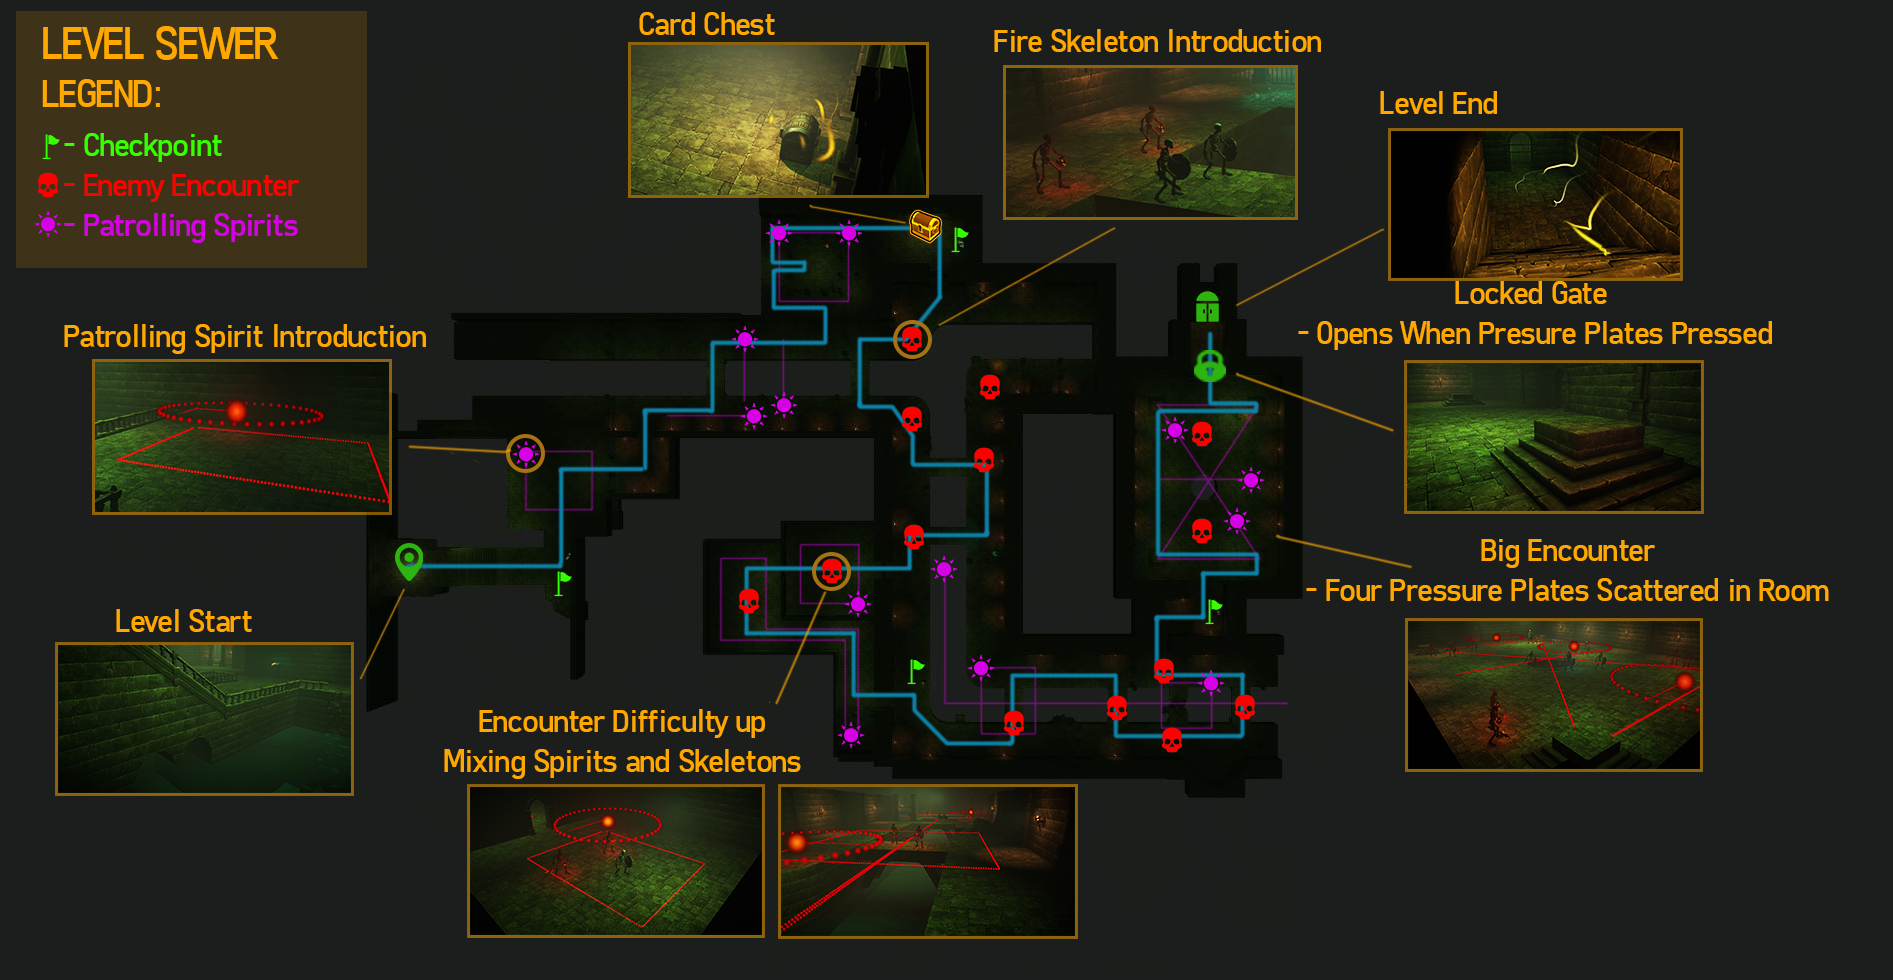 Sewer_Topdown_Overview_updated.png